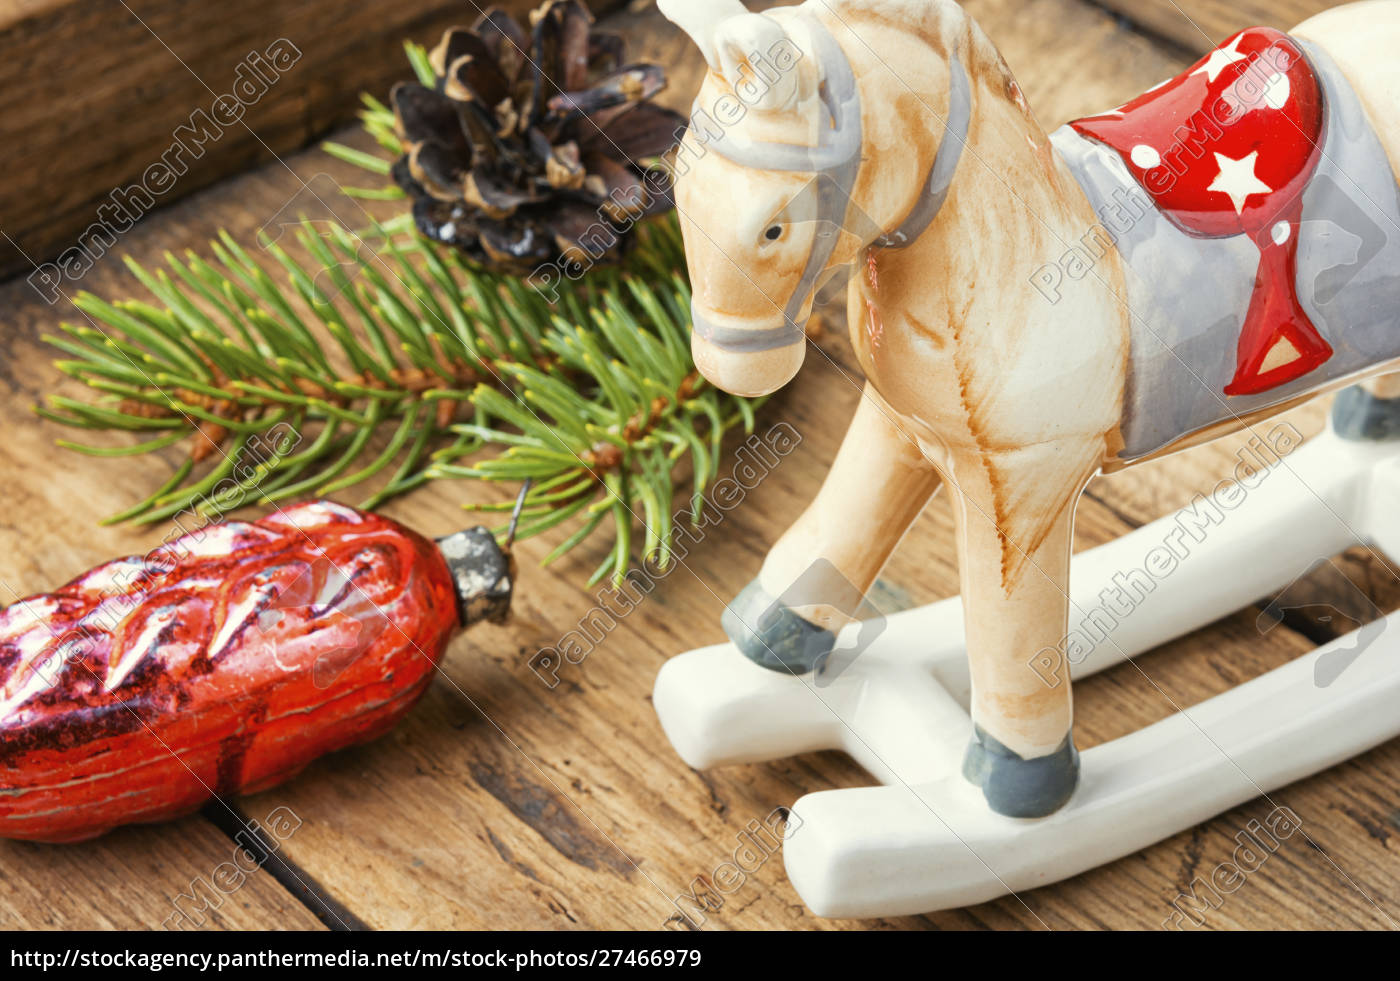 childrens, toy, horse - 27466979